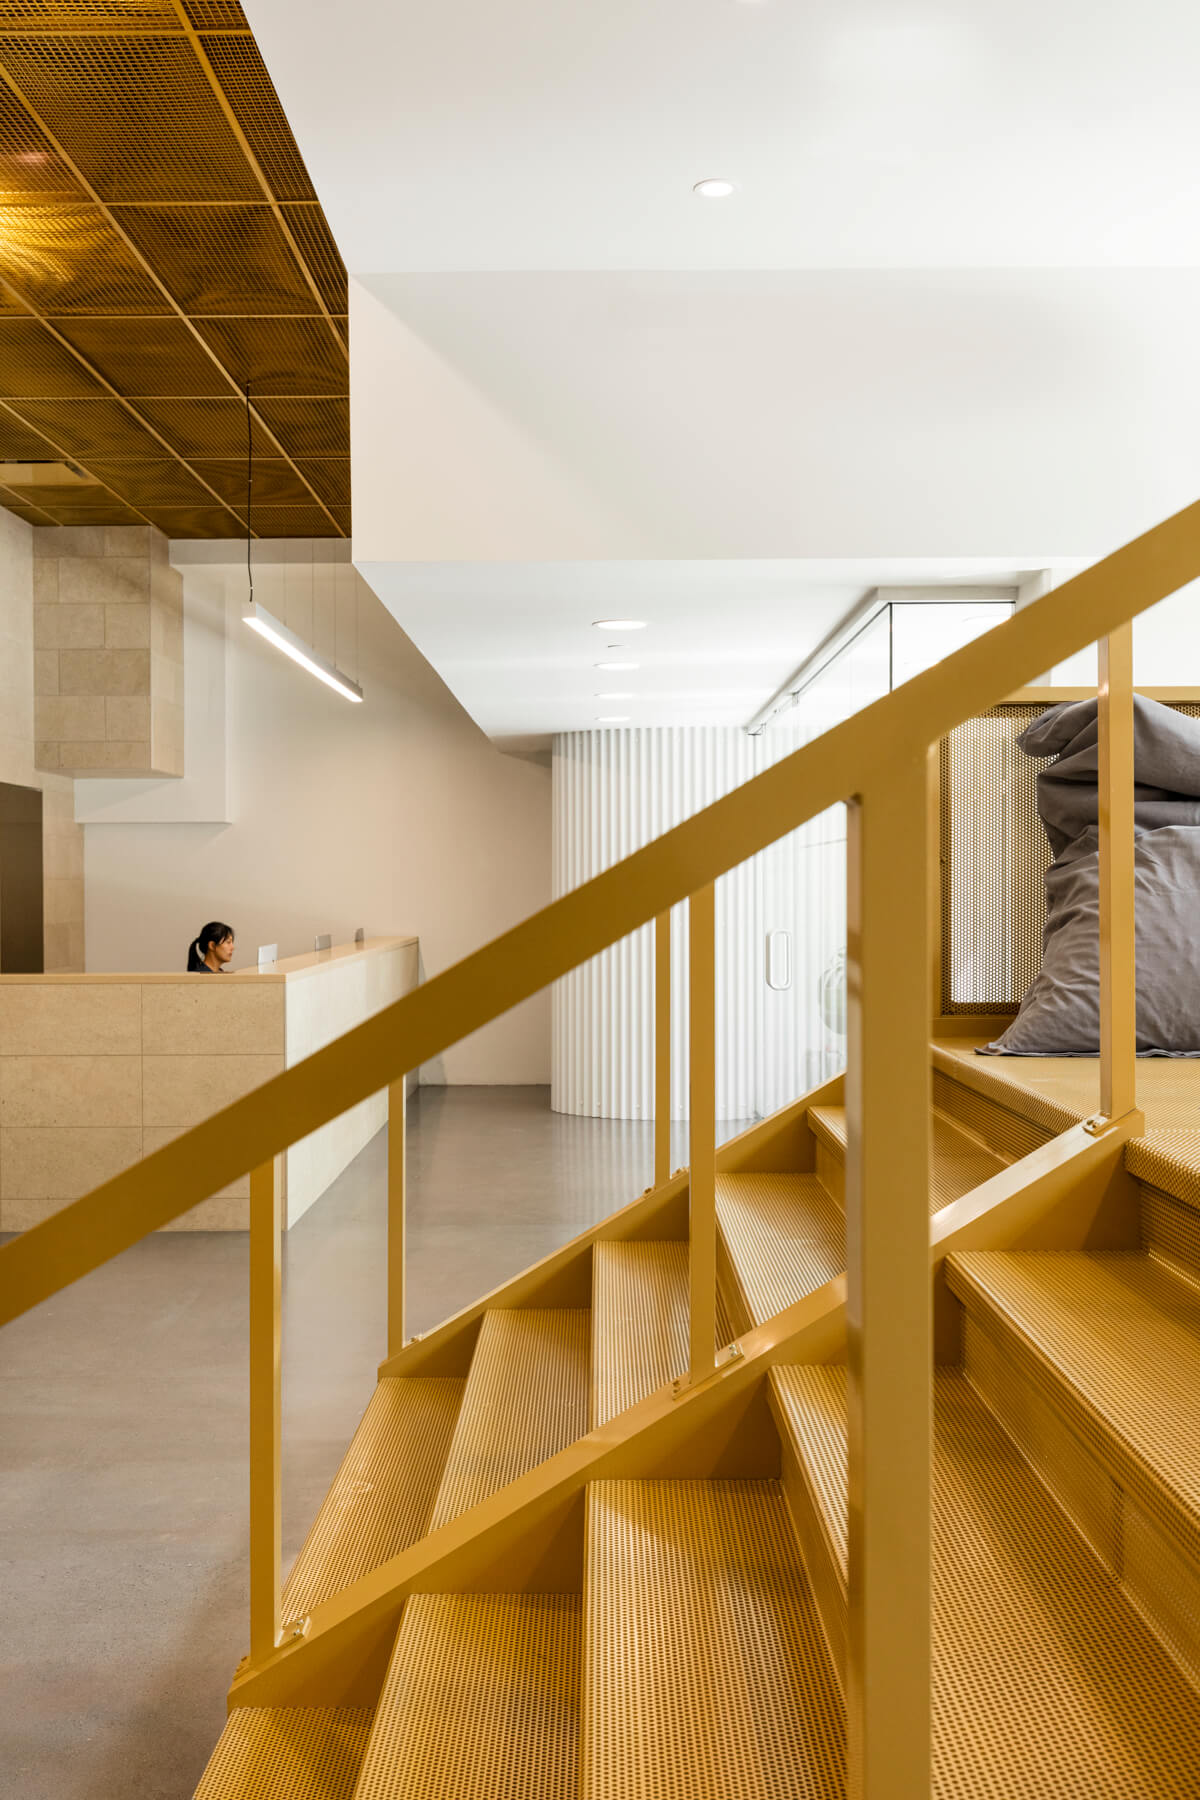 Reception and golden staircase at Go Orthodontistes office, designed by Natasha Thorpe